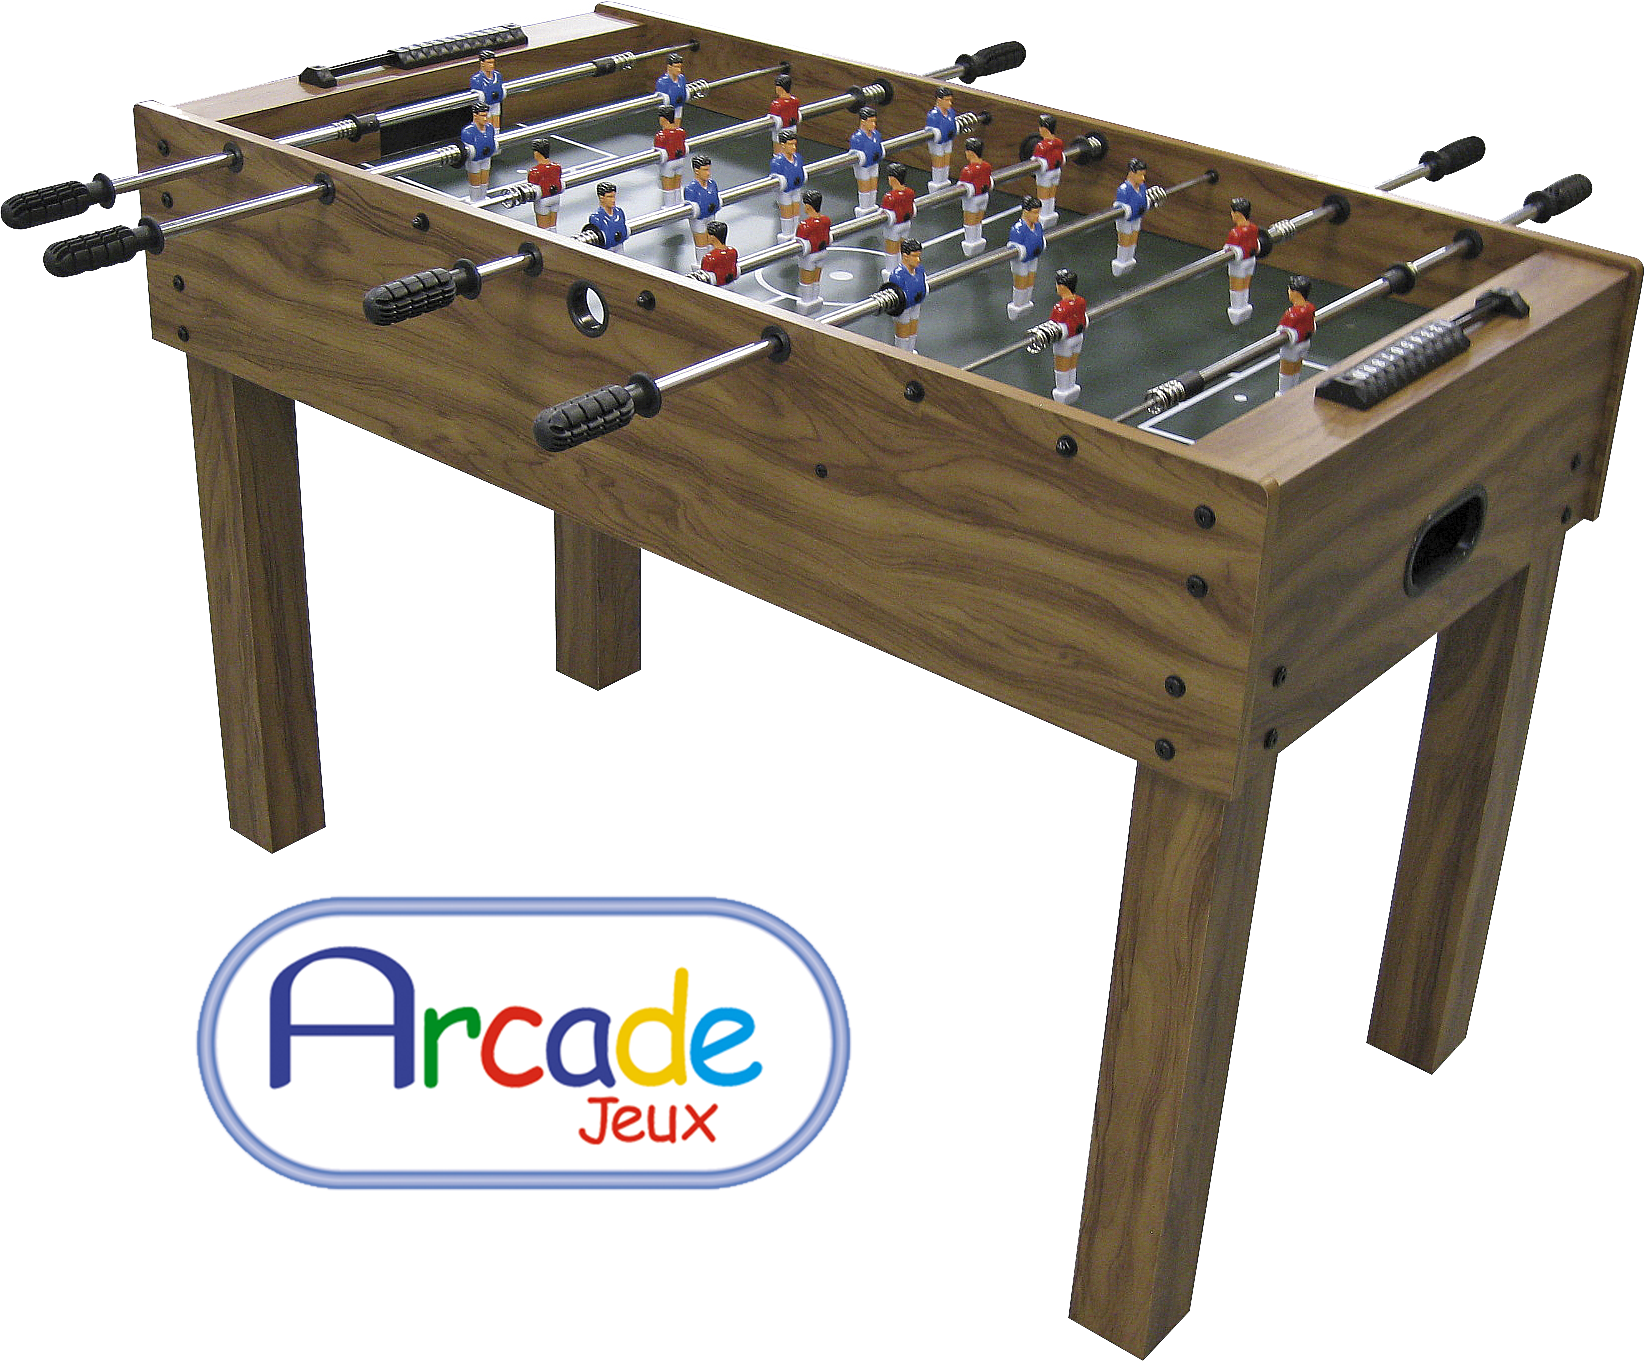 baby foot arcade jeux force babyfoot vintage. Black Bedroom Furniture Sets. Home Design Ideas